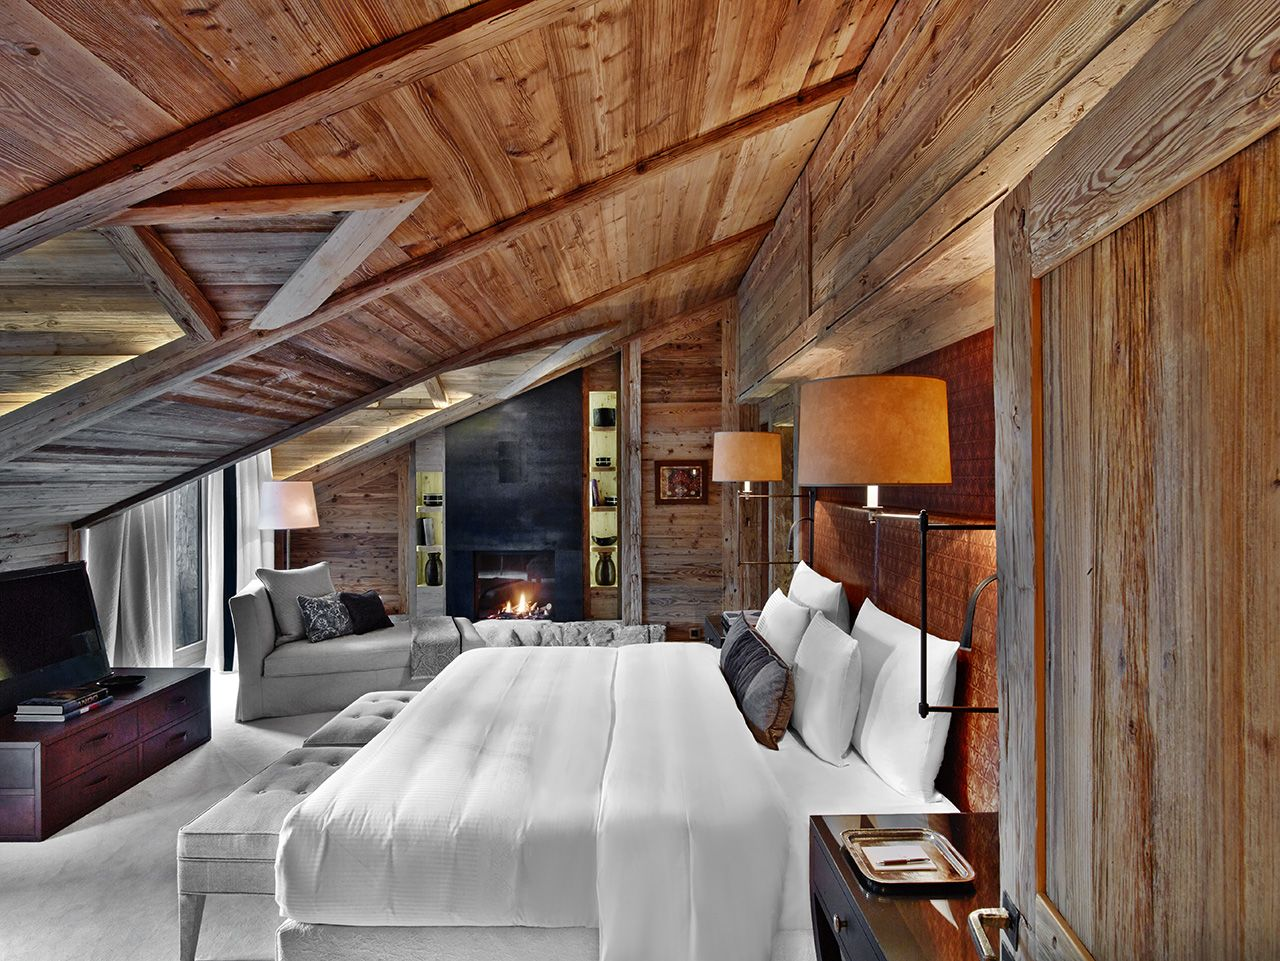 Guestroom Alpina Gstaad Switzerland Interior